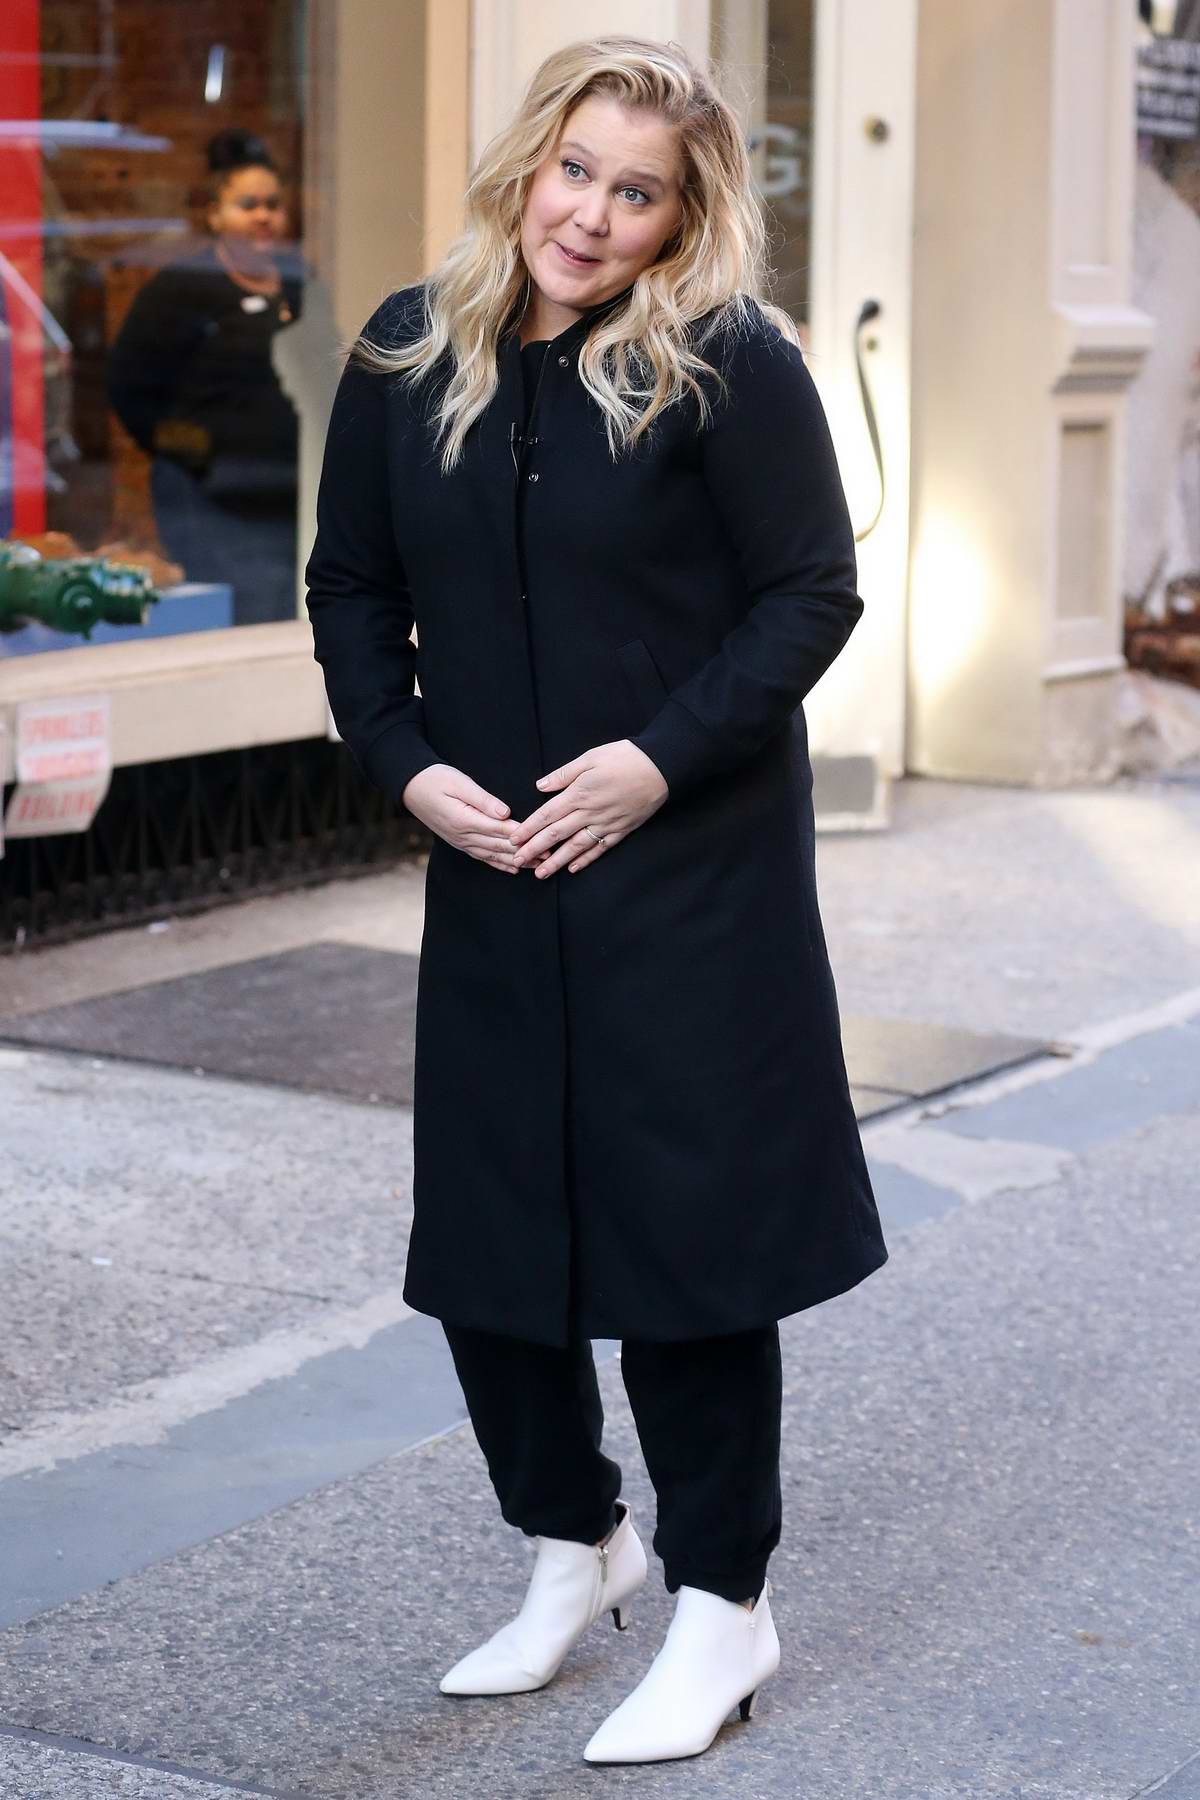 Amy Schumer have some fun while on the set of a photoshoot in New York City